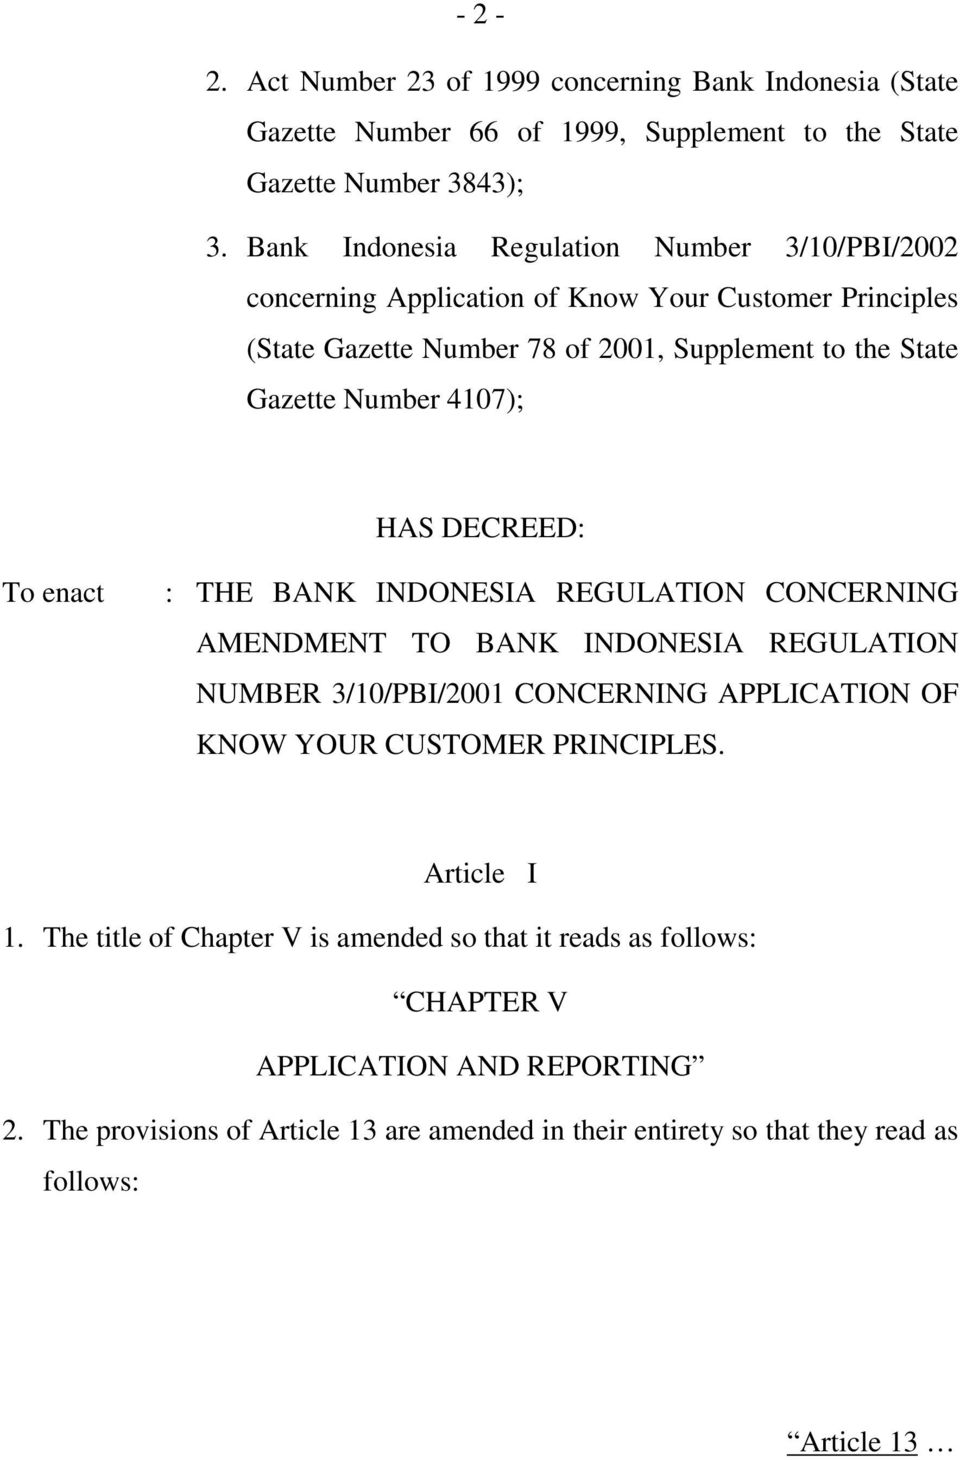 4107); HAS DECREED: To enact : THE BANK INDONESIA REGULATION CONCERNING AMENDMENT TO BANK INDONESIA REGULATION NUMBER 3/10/PBI/2001 CONCERNING APPLICATION OF KNOW YOUR CUSTOMER